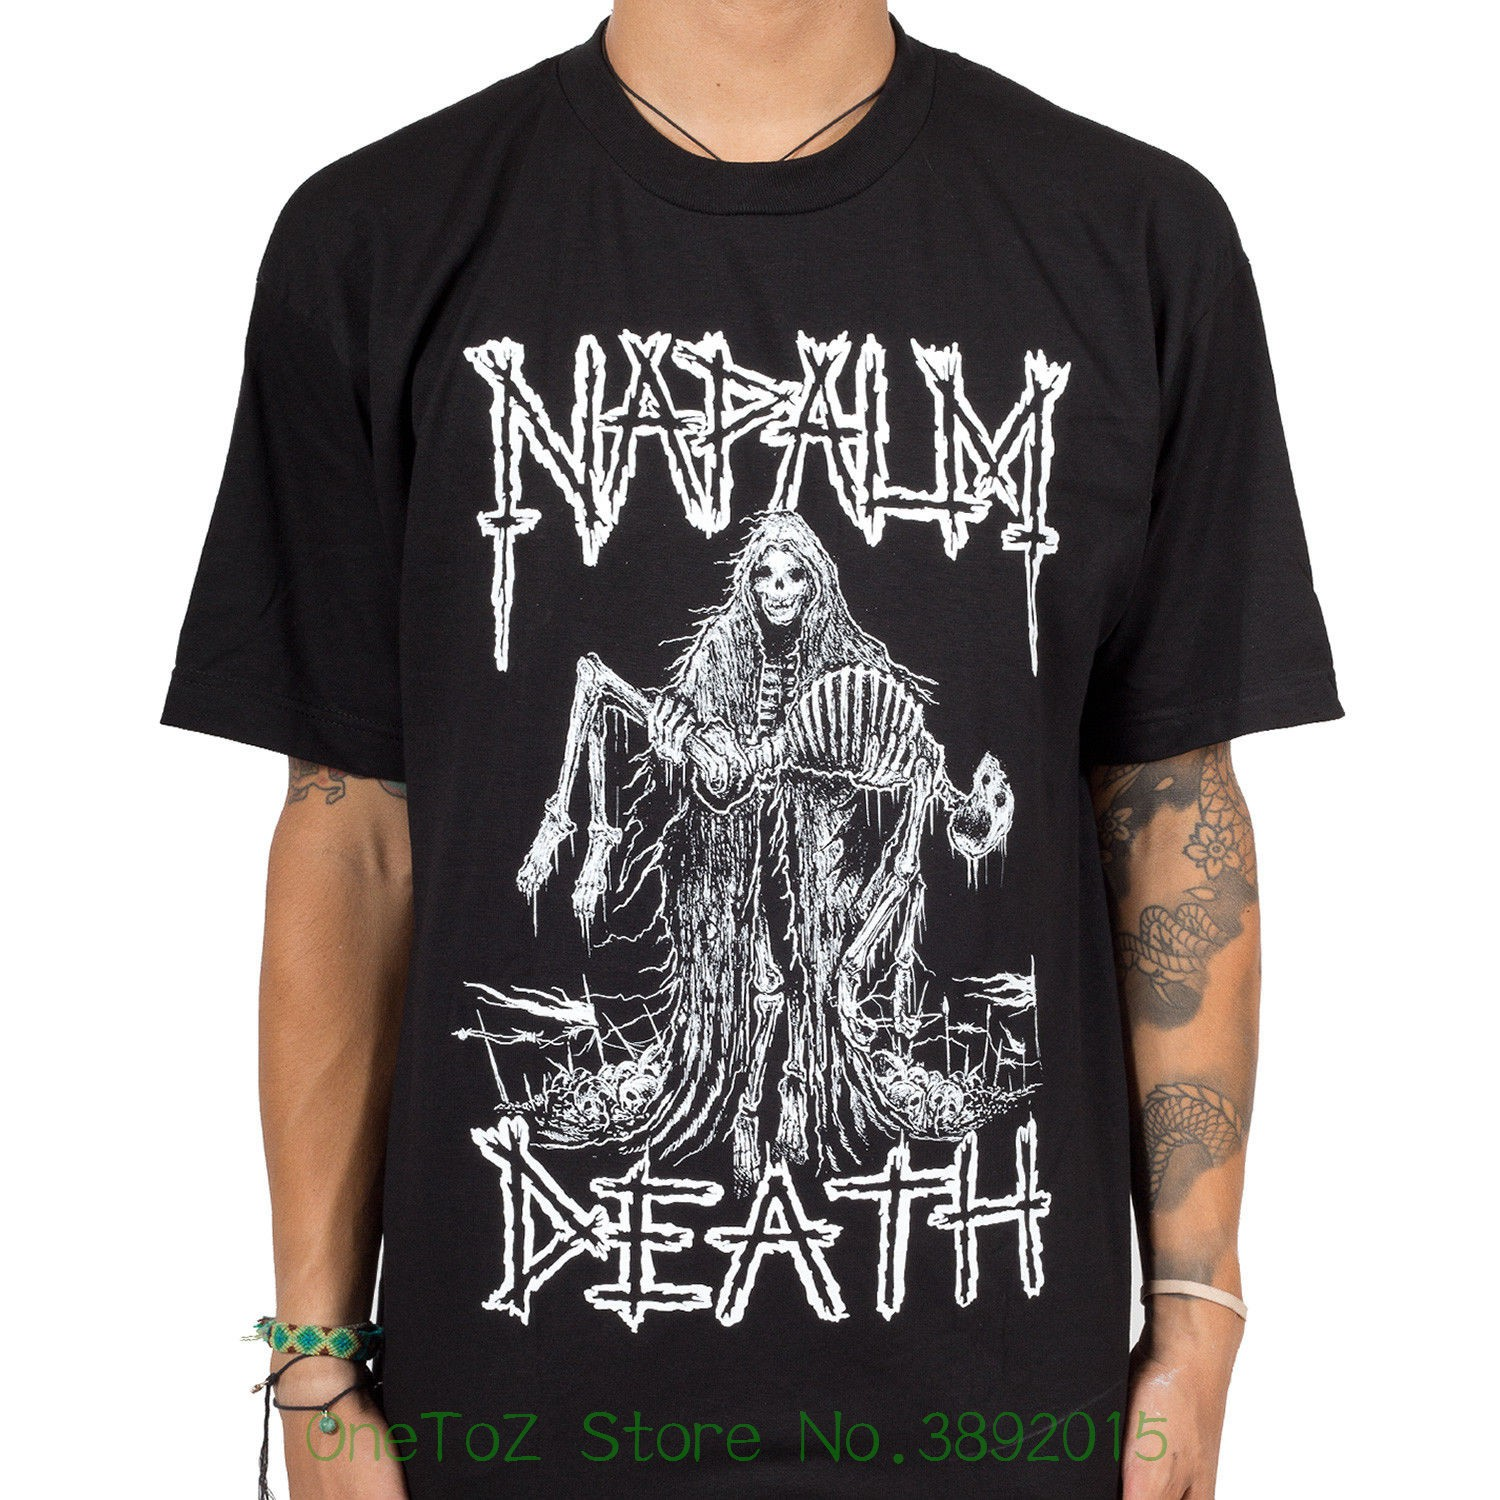 Short Sleeve Mens Formal Shirts Authentic Napalm Death Band Reaper Skeleton Metal T-shirt S - 2xl New